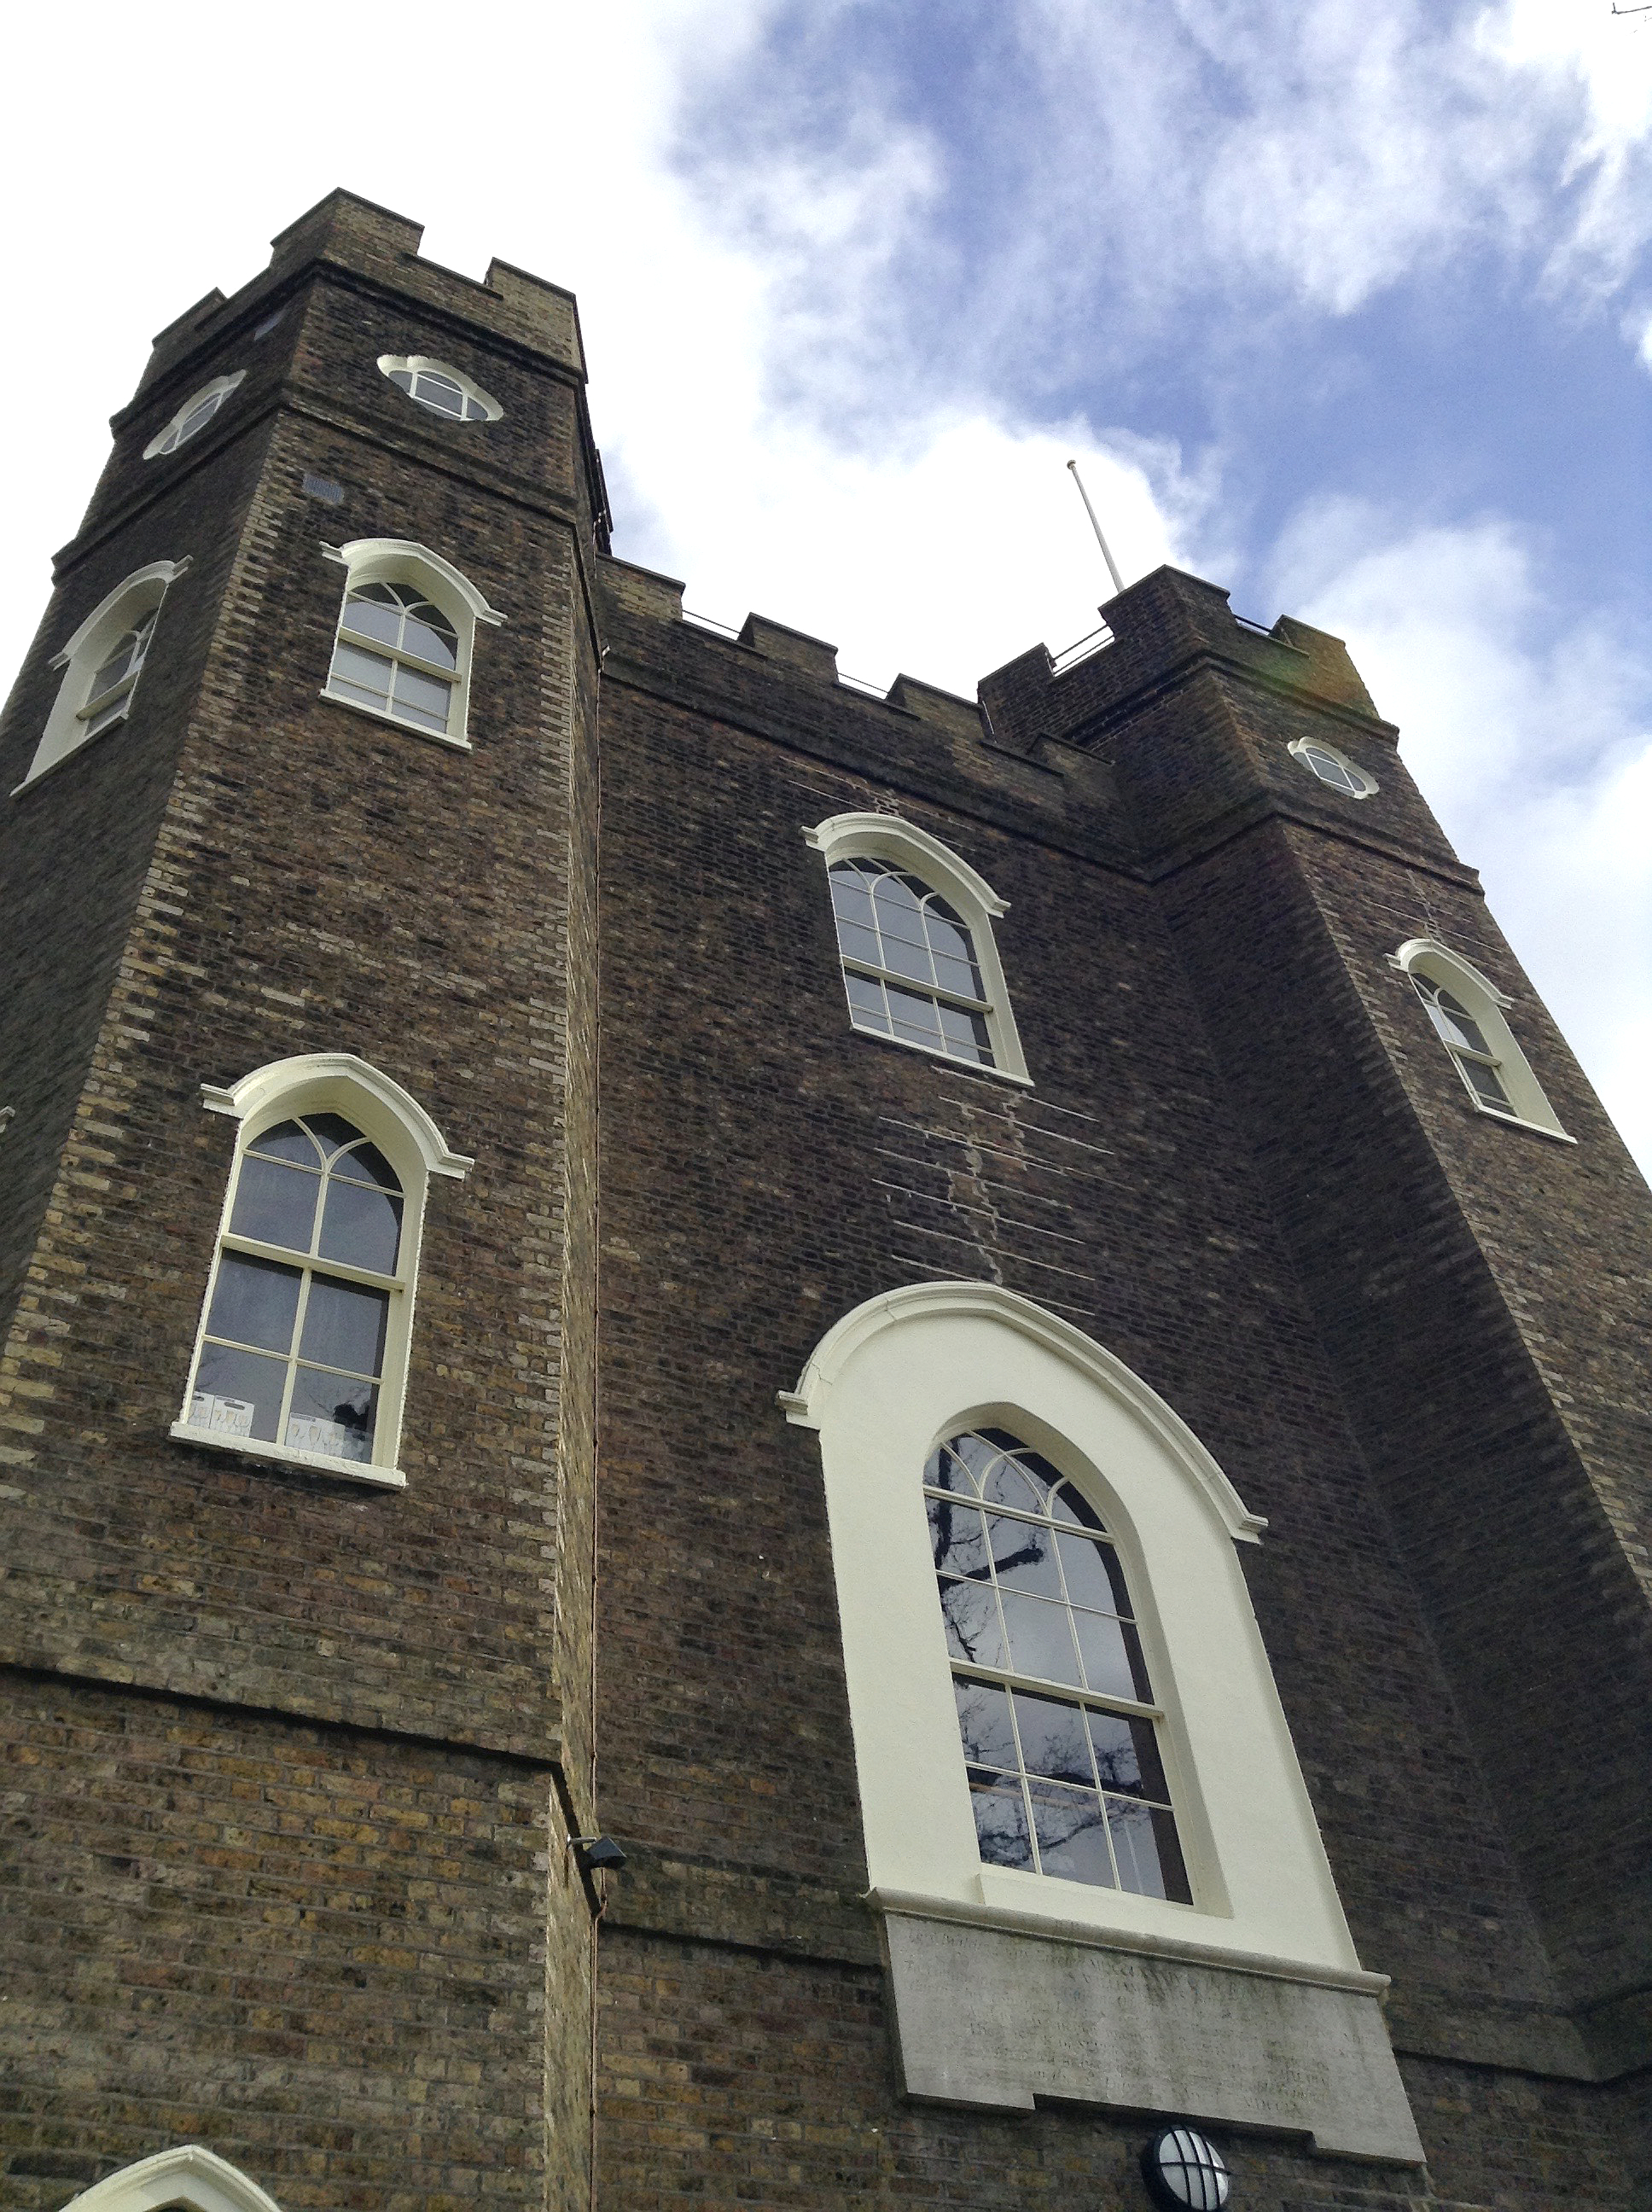 a view of severndroog castle in shooters hill against blue sky and clouds